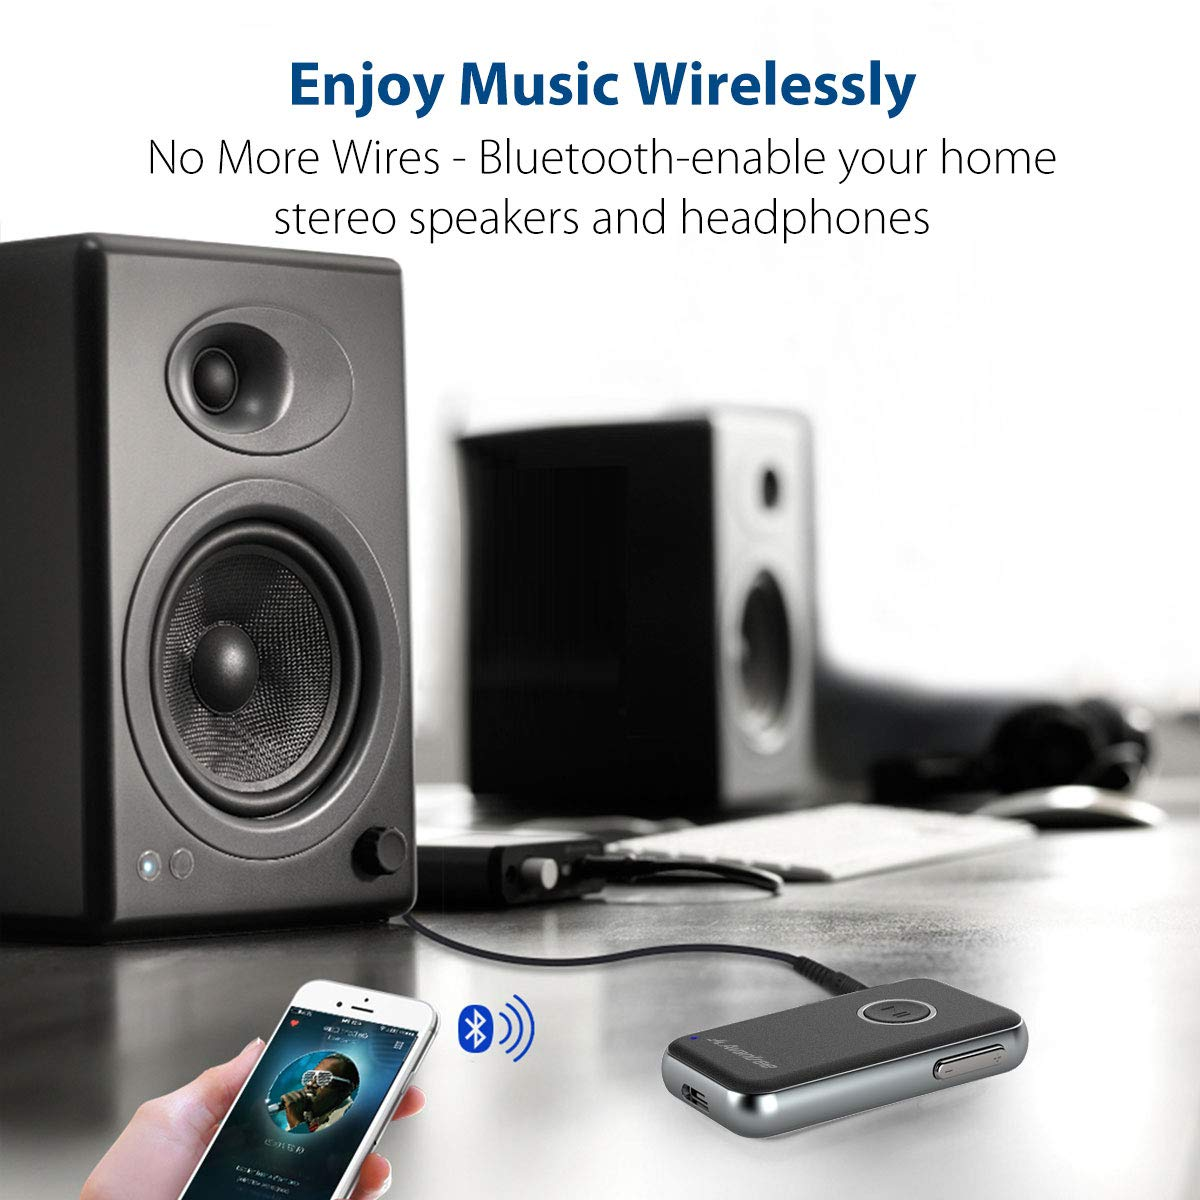 Speaker 2 Year Warranty Hands-free Car Kit Portable Wireless Audio Adapter 3.5mm Aux for Music Streaming Stereo System Avantree V4.1 Bluetooth Receiver For Car and Home Audio Headphones